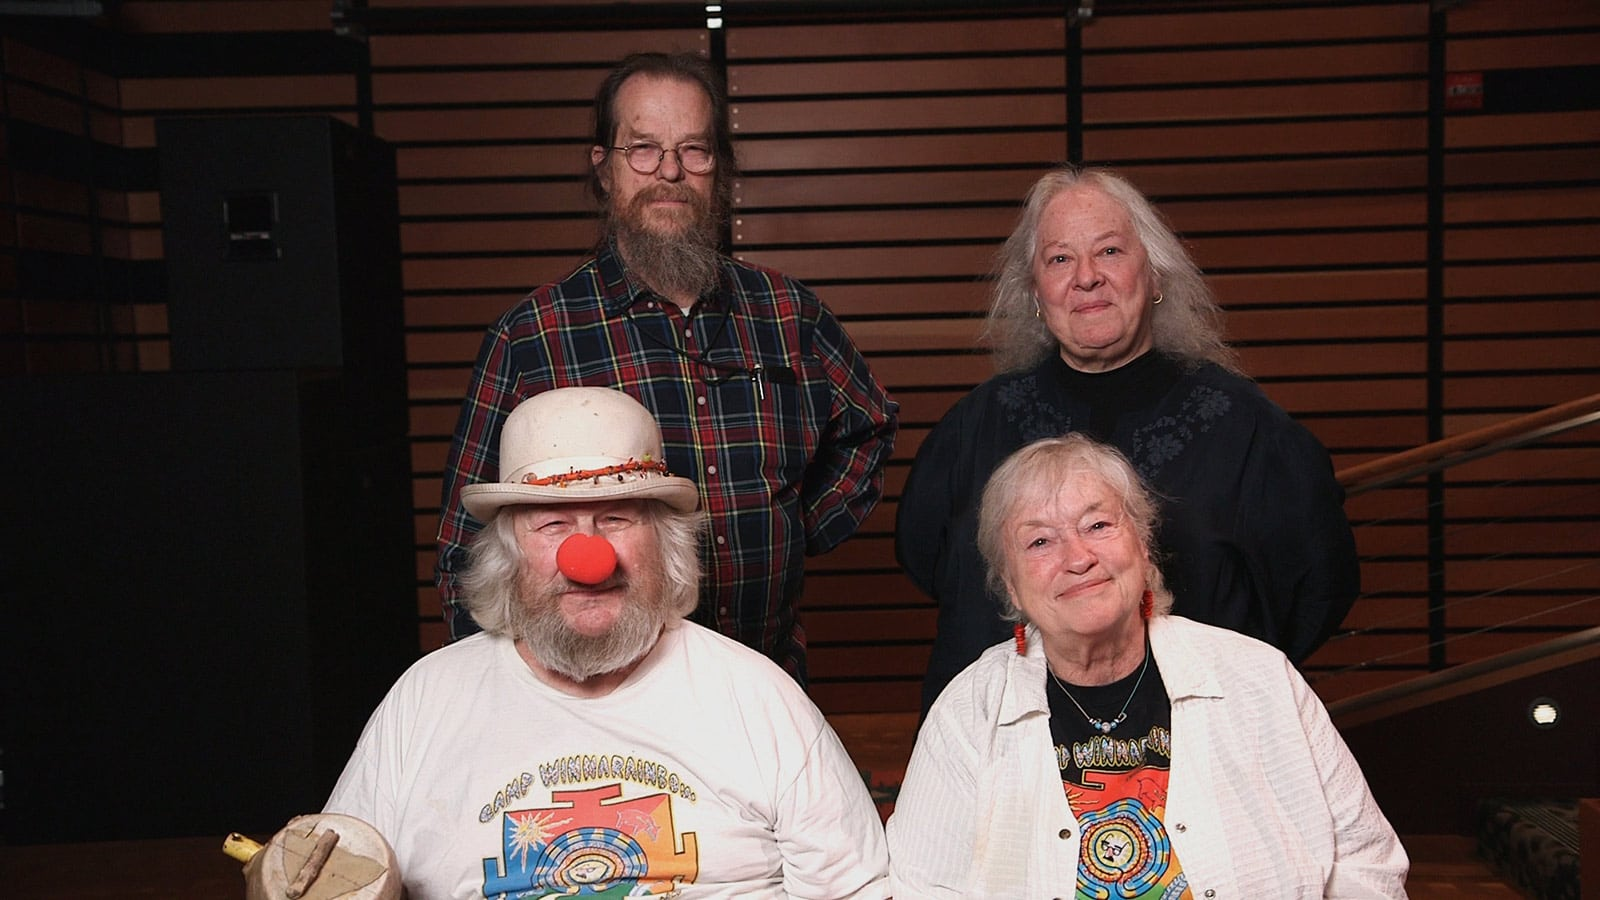 John and Helen Meyer host Wavy Gravy for his 81st Birthday Benefit at Pearson Theatre (Bottom Left to Right: Wavy Gravy, Jahanara Romney)